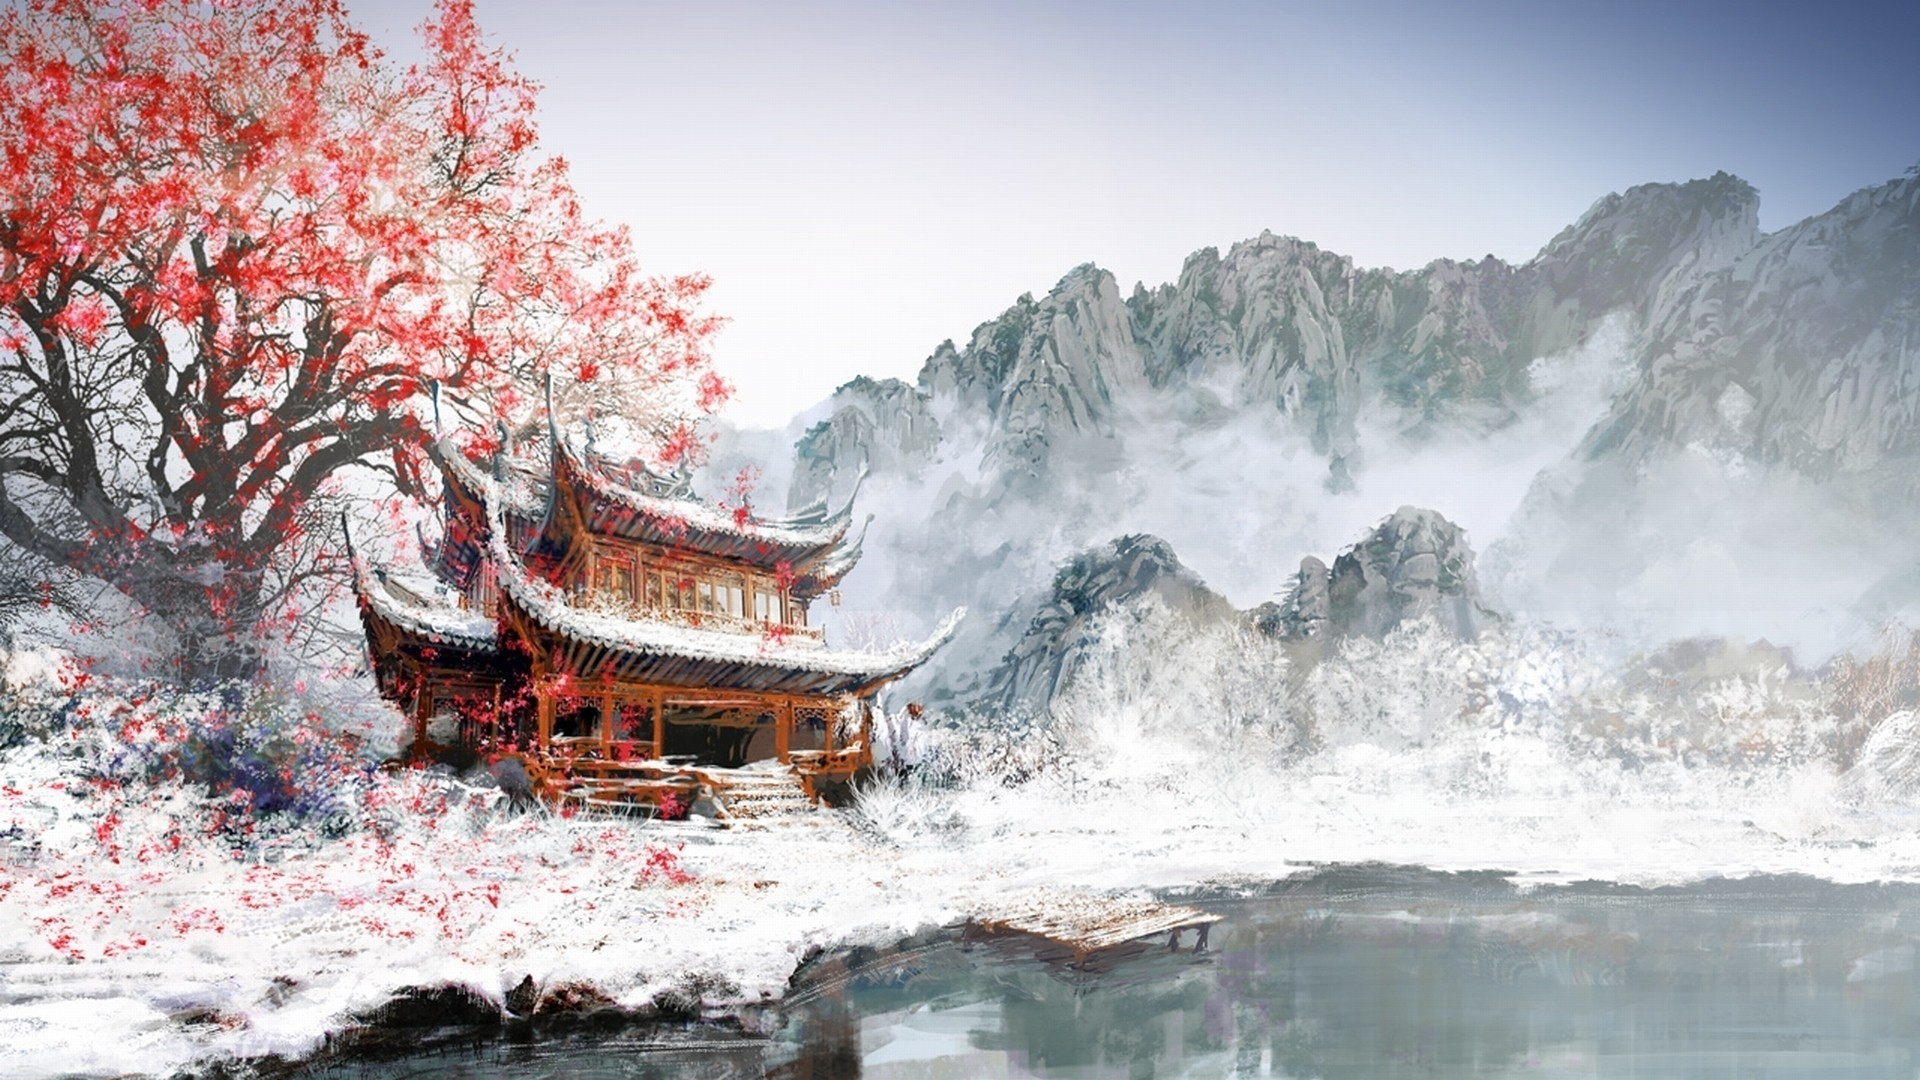 painting, Japan, Winter, White, Snow, Mountain, Cherry Blossom Wallpapers  HD / Desktop and Mobile Backgrounds